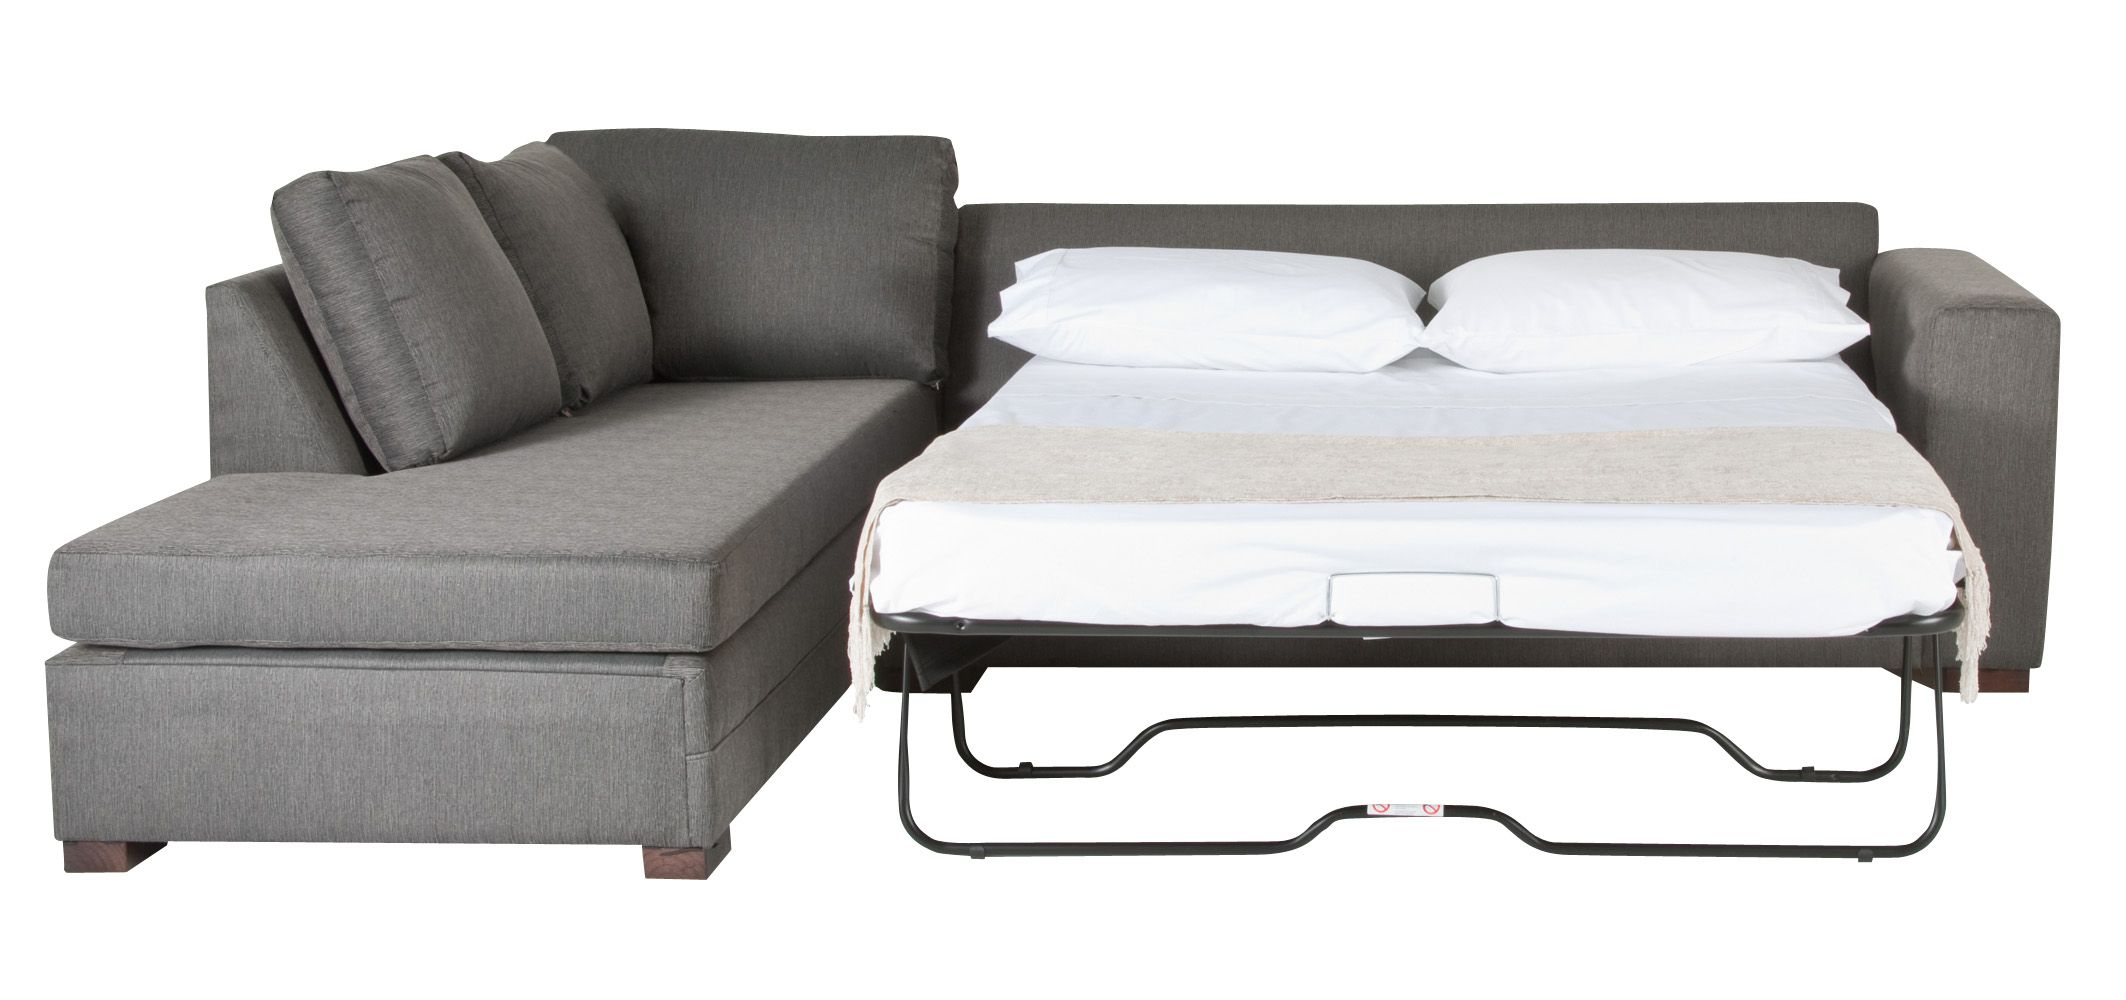 Picturesque Gray Fabric Sleeper Couch With Pull Out Bed ...